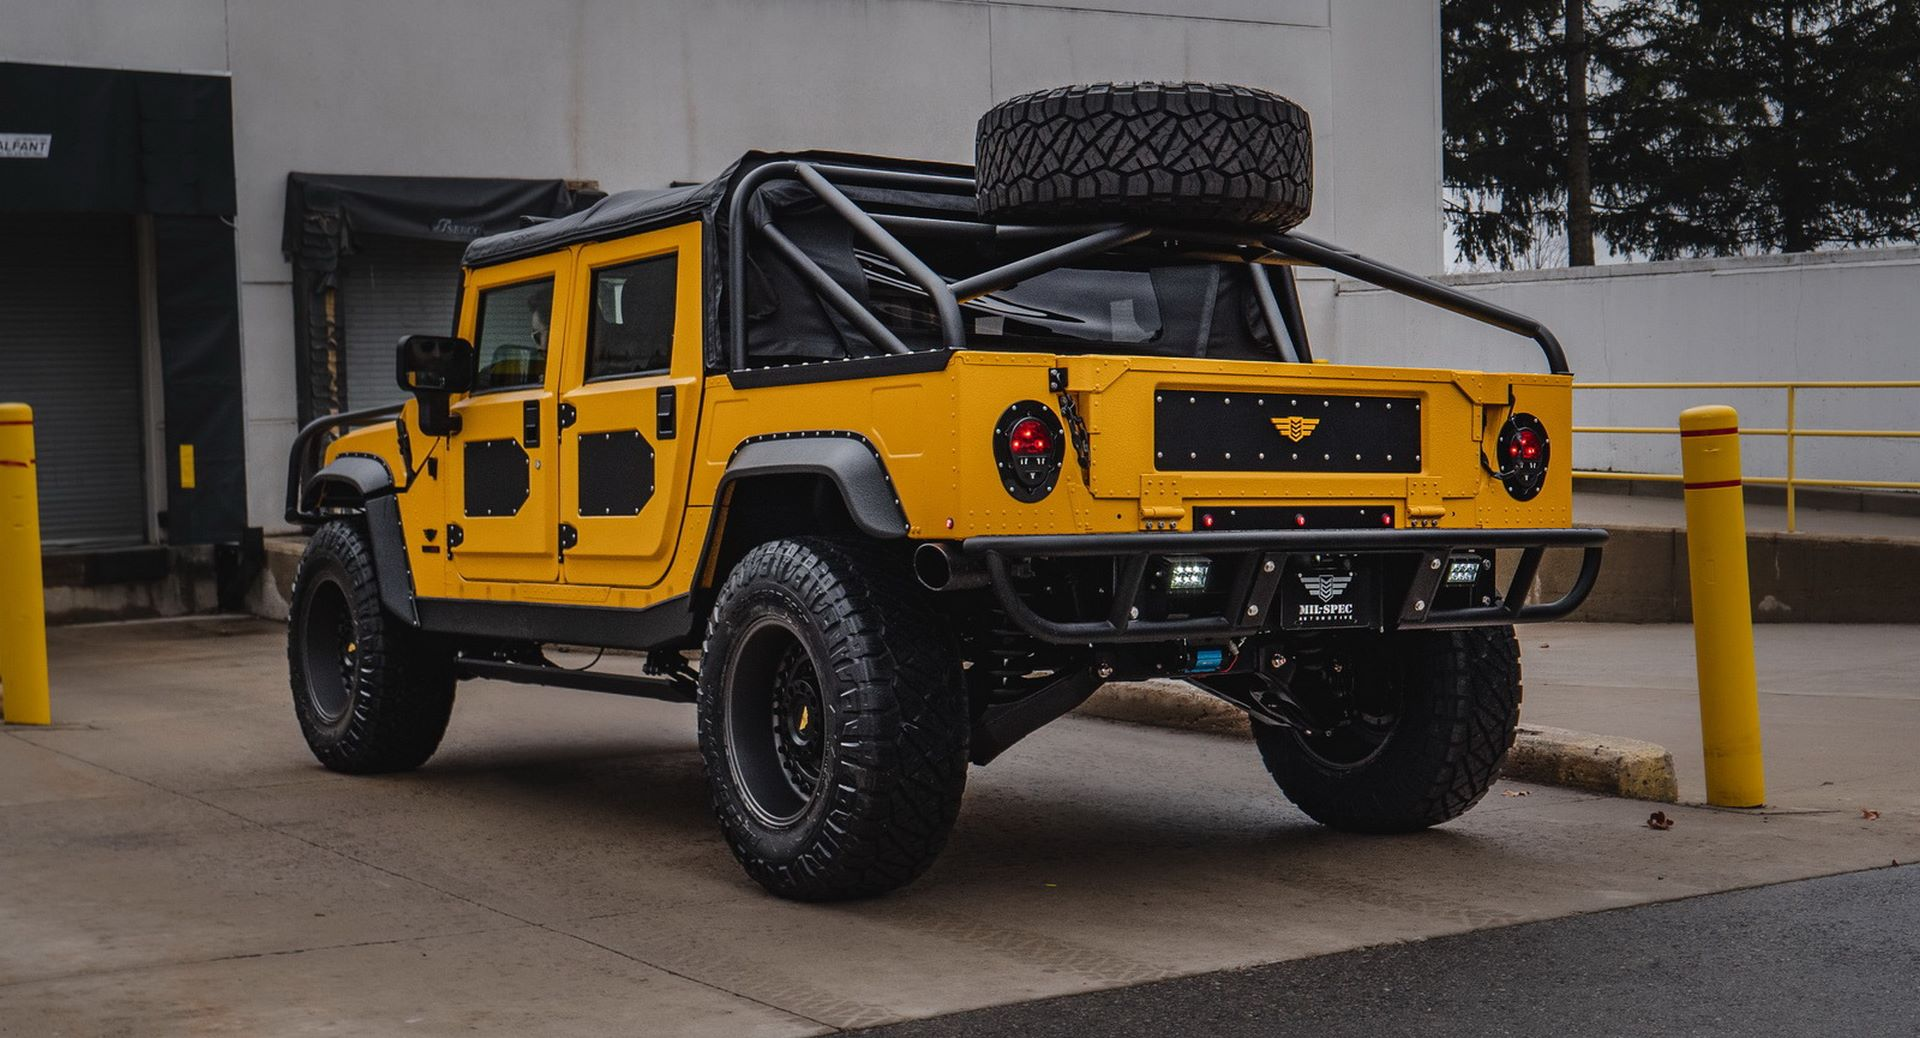 Hummer-M1-R-by-Mil-Spec-7